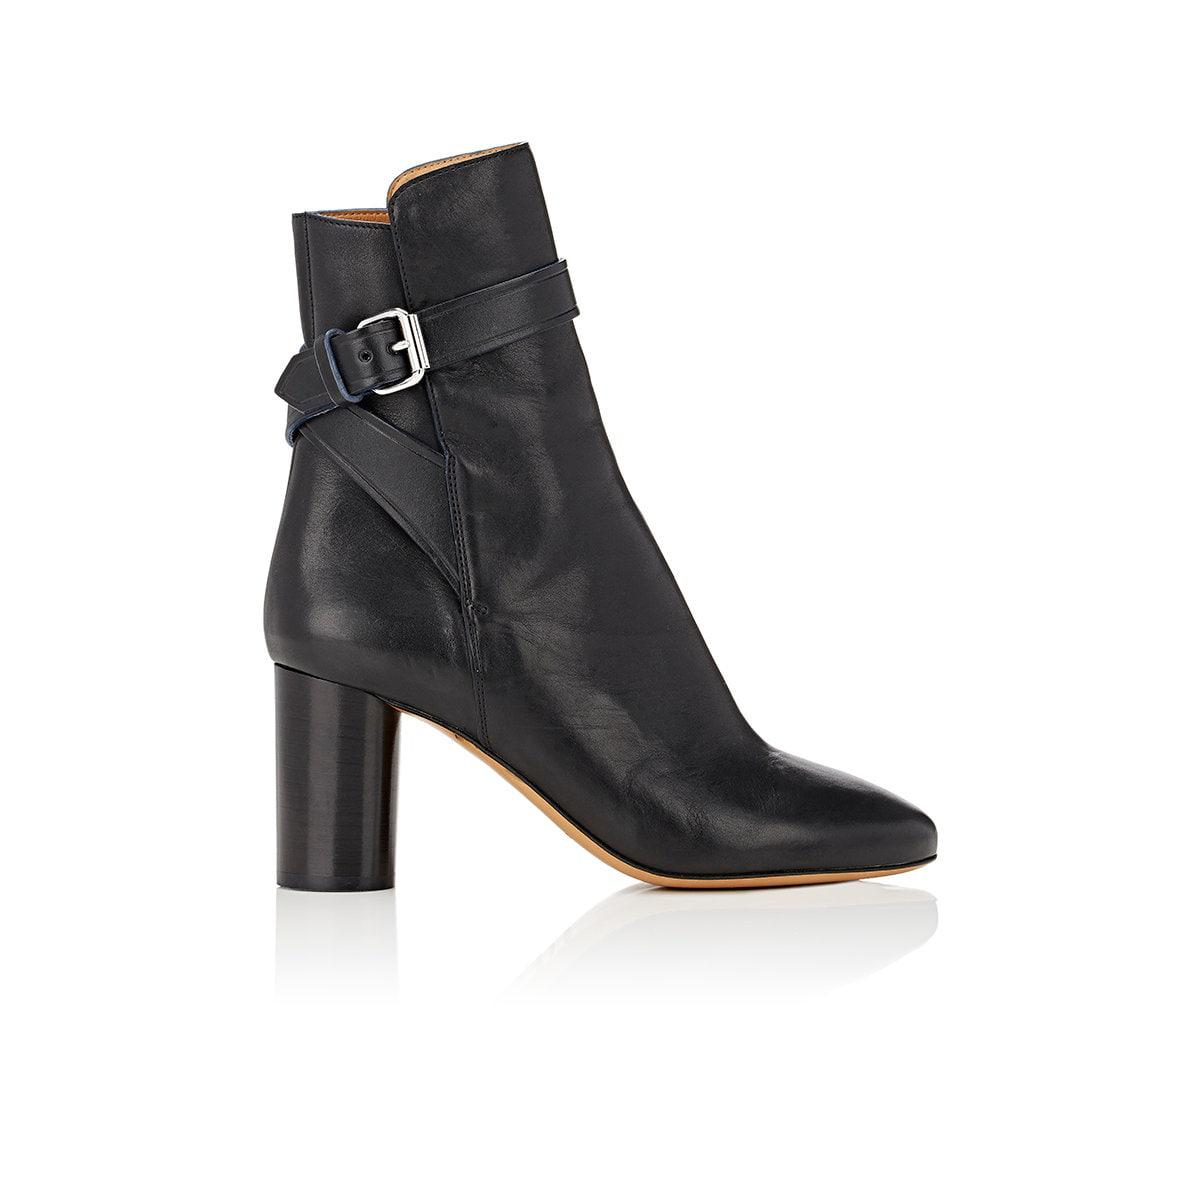 Isabel Marant Reaves Leather Booties genuine cheap online PHB8Mqv3p